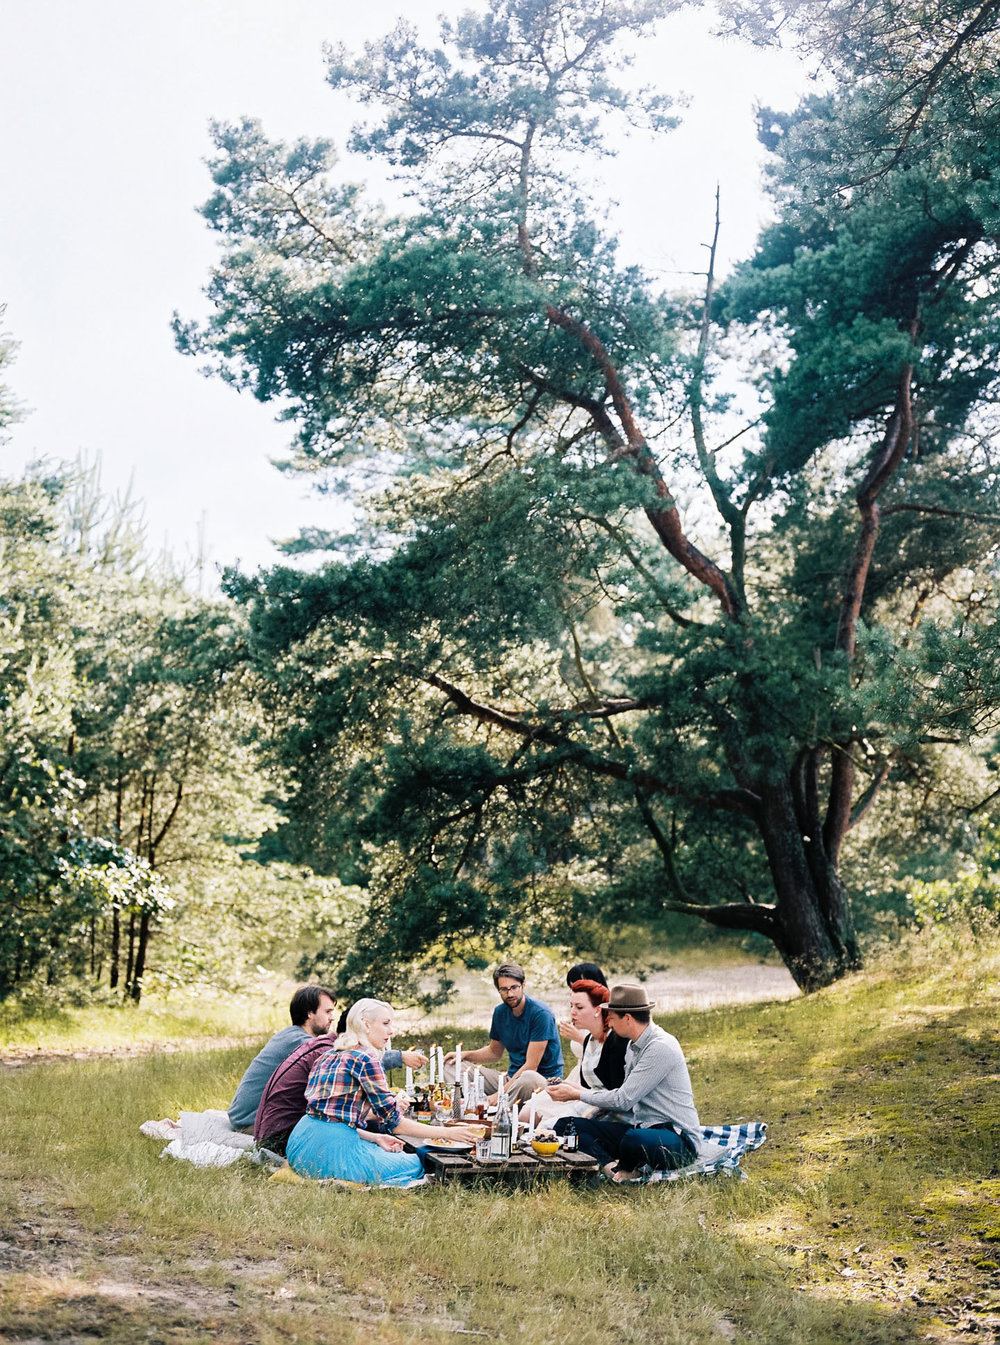 forest-picnic-with-friends-inspire-styling-hanke-arkenbout-photography-24.jpg